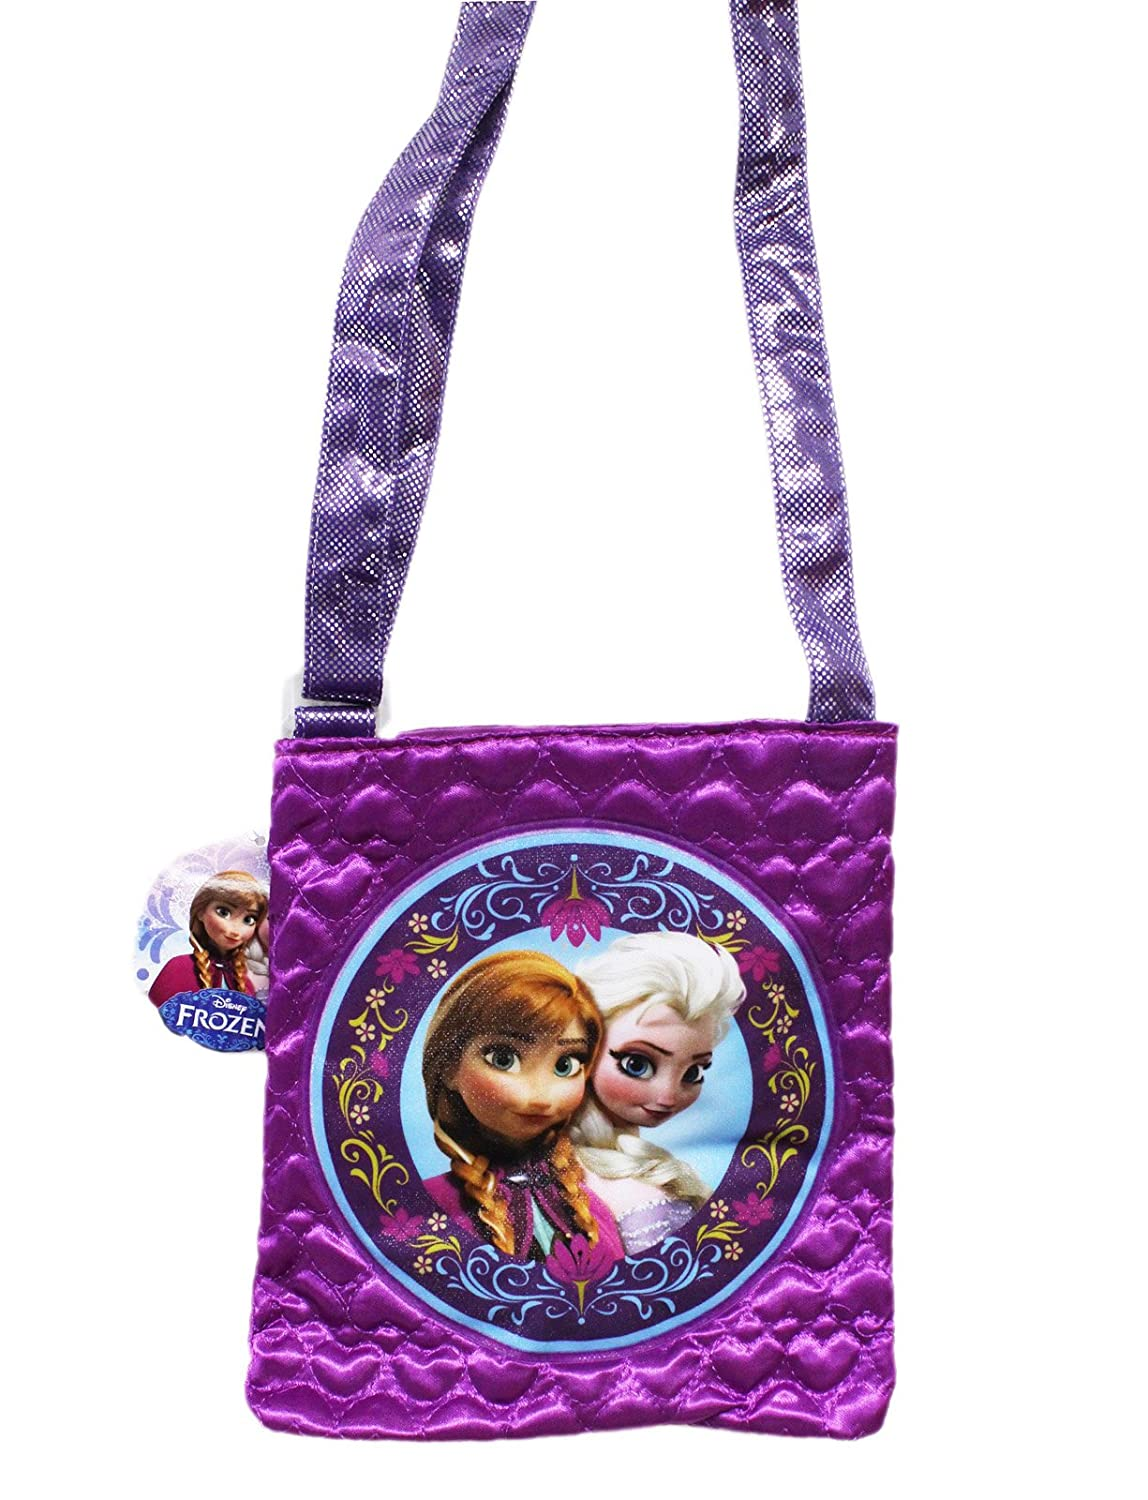 Disney Frozen Anna /& Elsa Crossbody Bag brand new